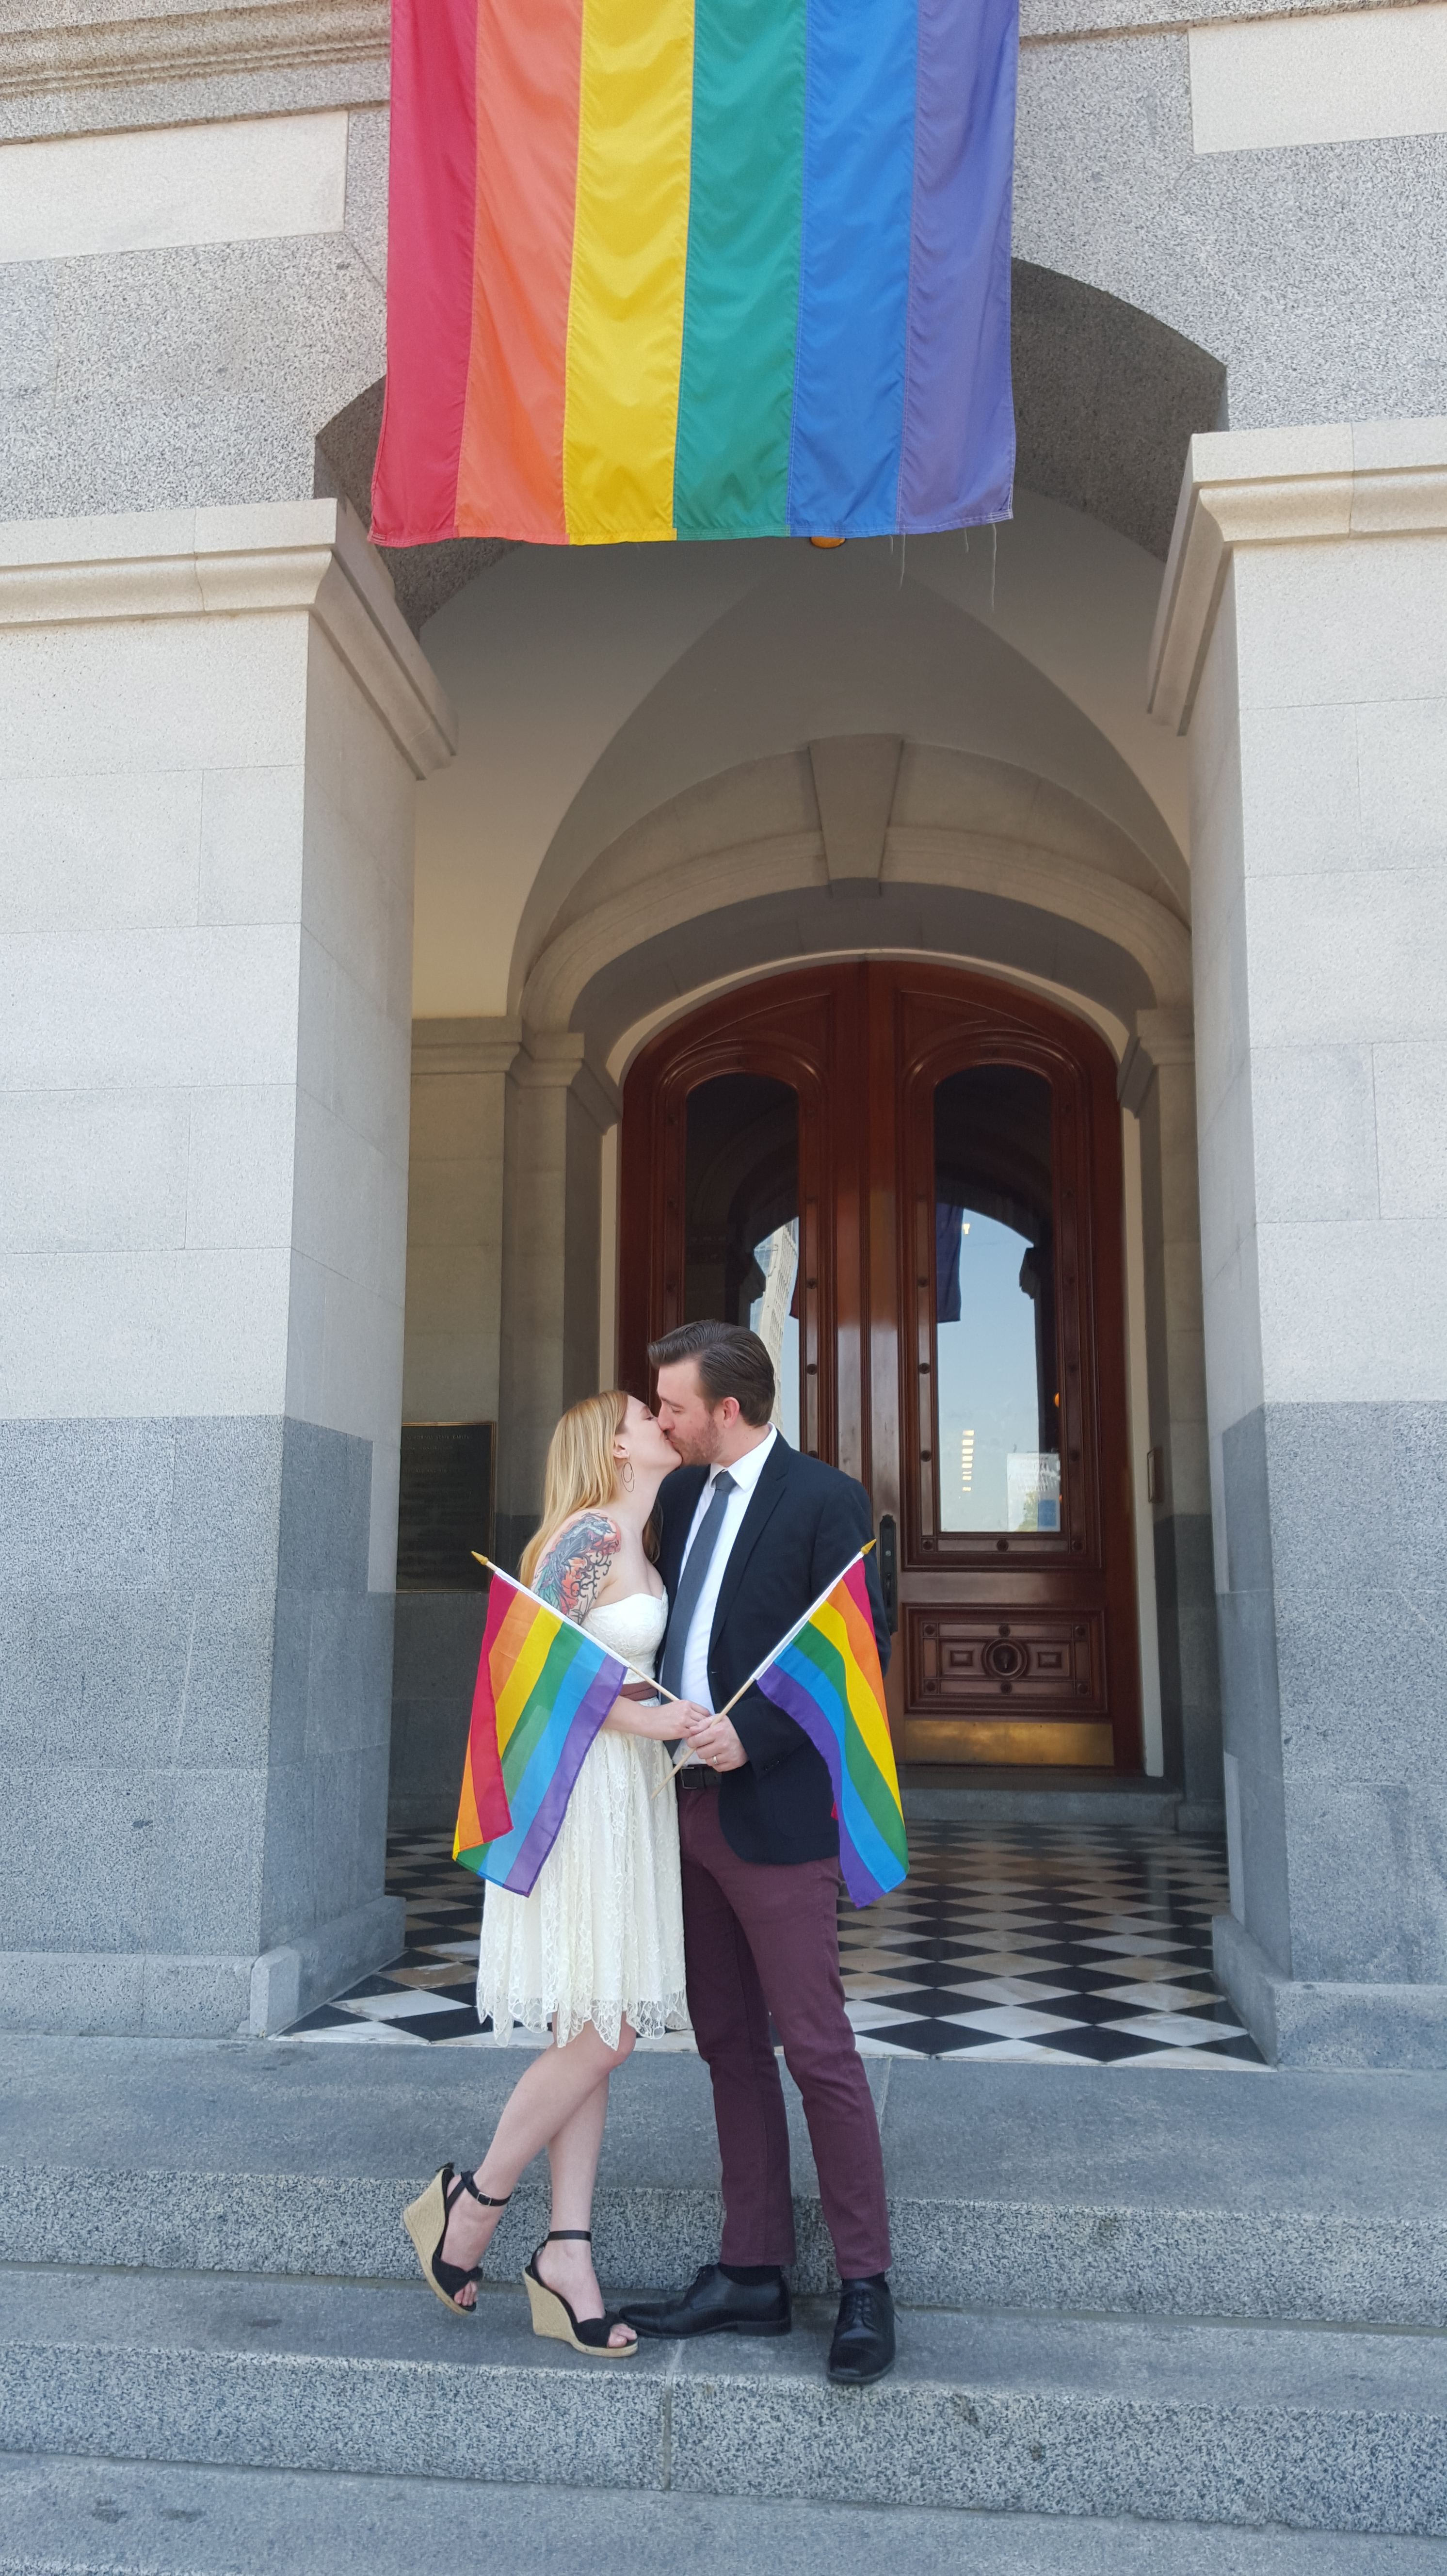 Roxy and Jordan Davis pose for pictures at the California State Capitol building in Sacramento after getting married at the County Clerk/Recorder's Office on June 26, 2015.